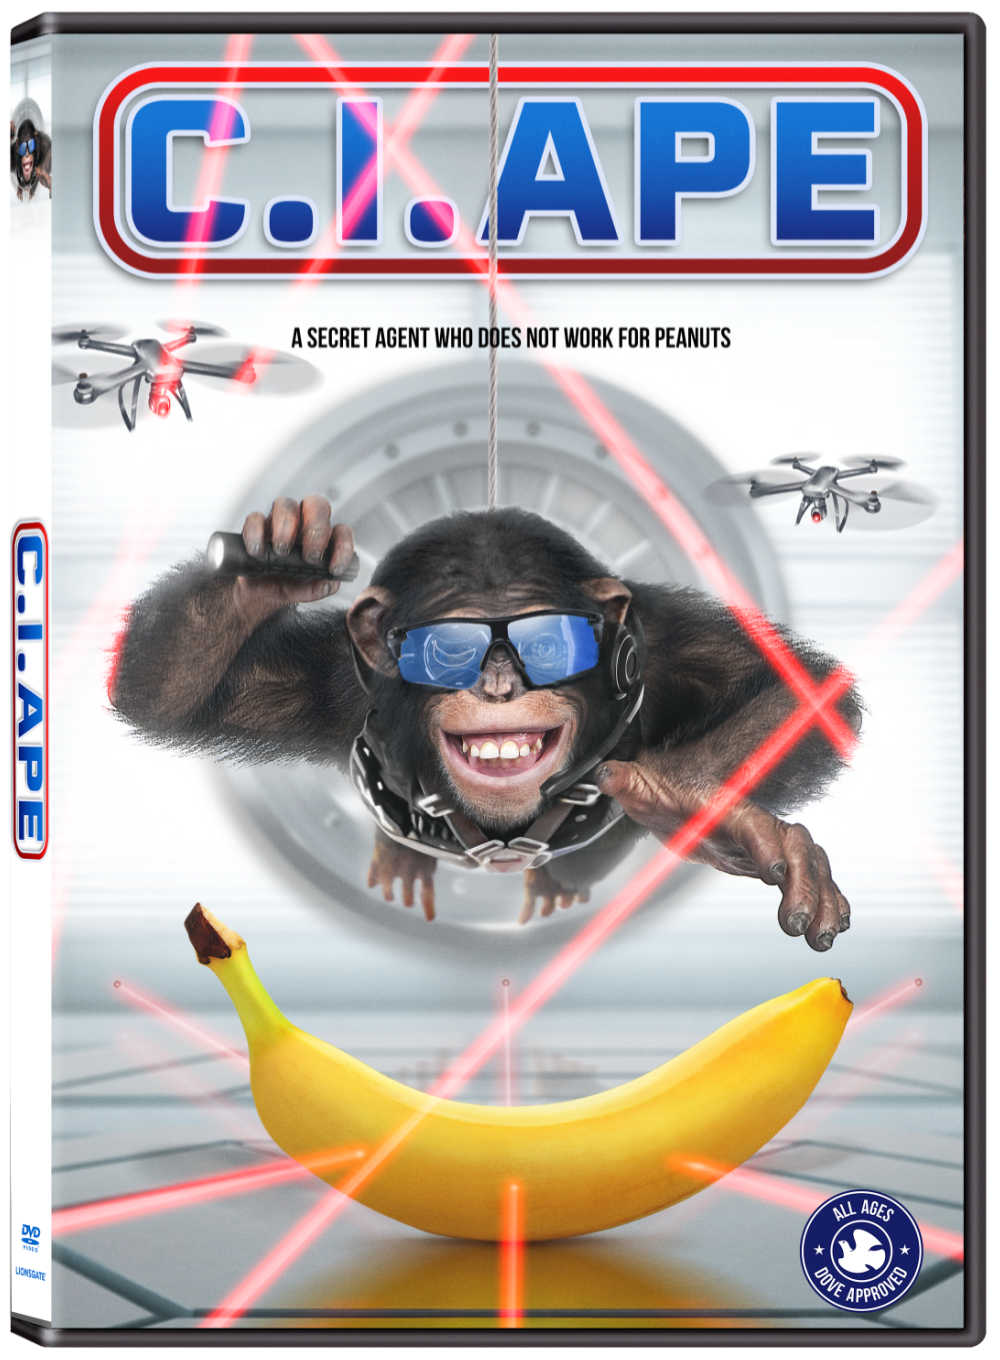 Watch the family friendly C I Ape movie, when you are ready to be entertained by a cute, hilarious and brave talking chimpanzee.